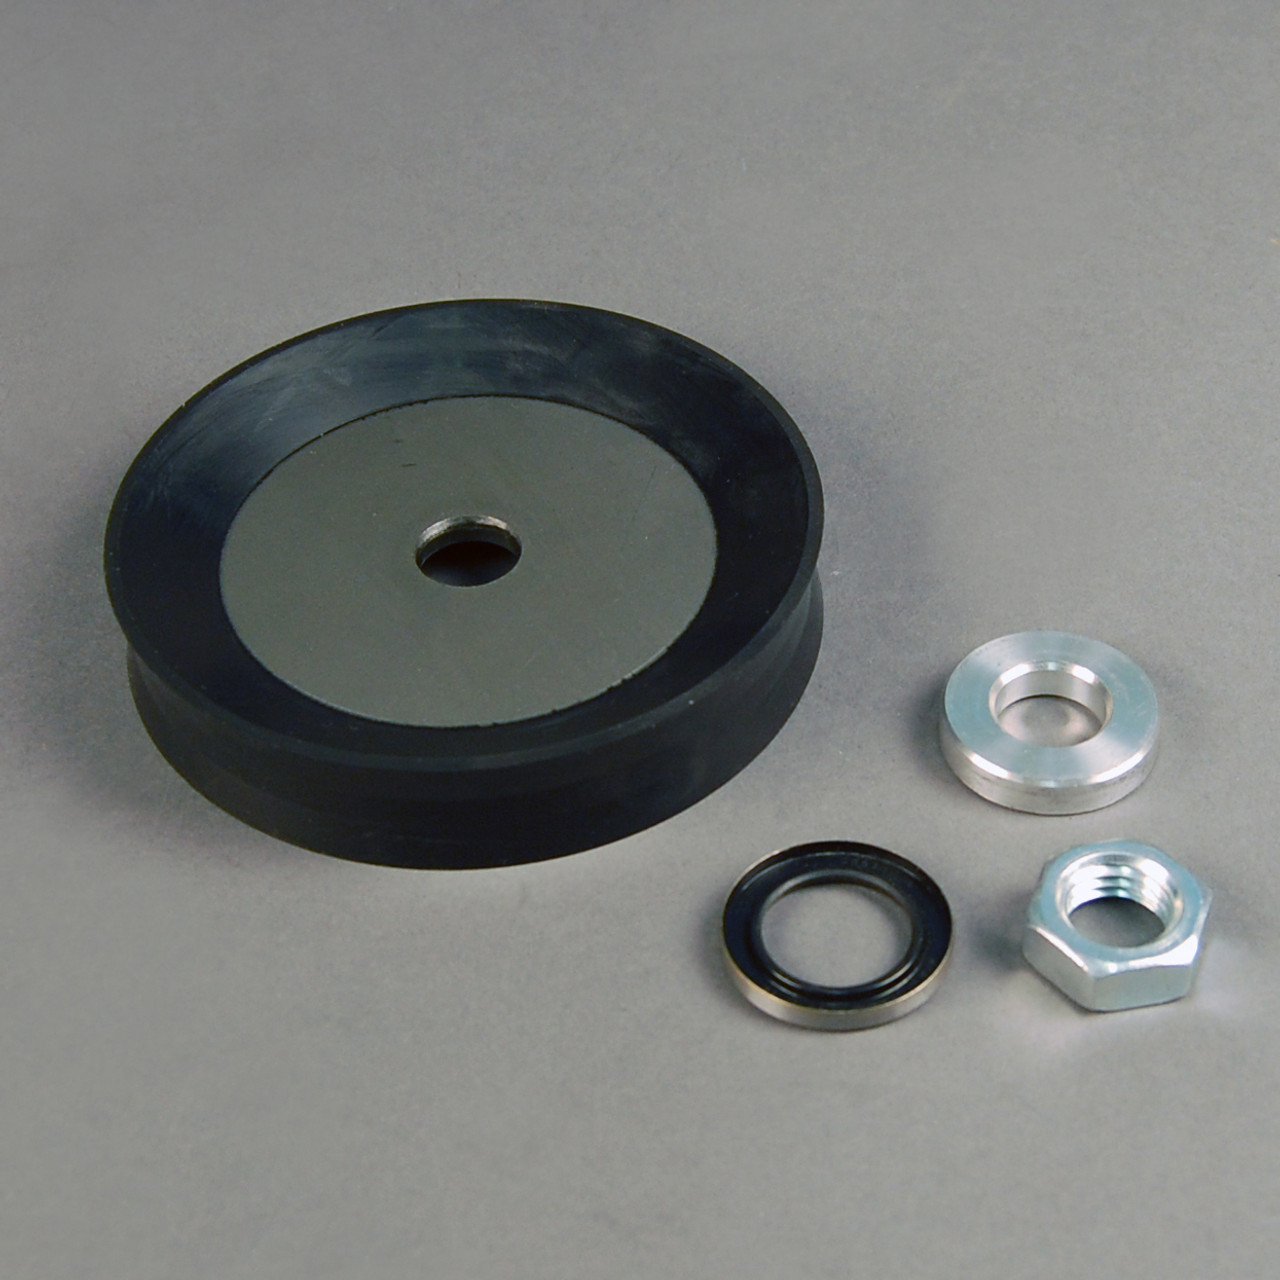 8107587 5 Replacement Cylinder Seal Kit for Coats Models 107587